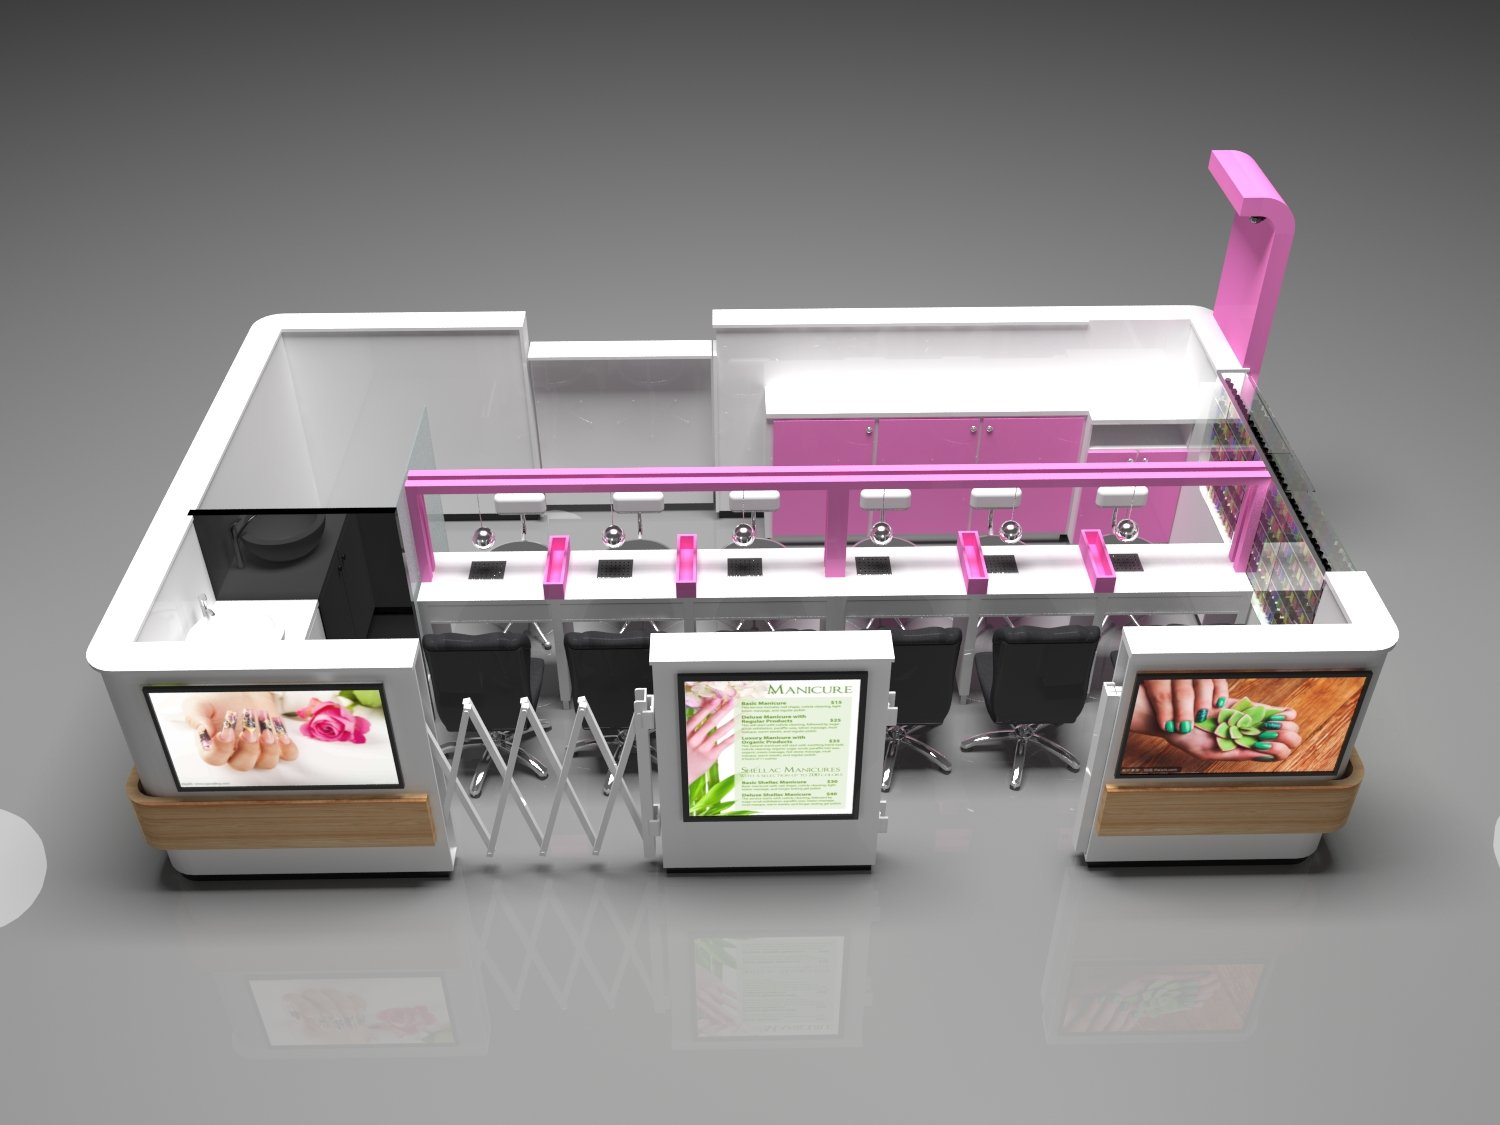 nail kiosk design for salon